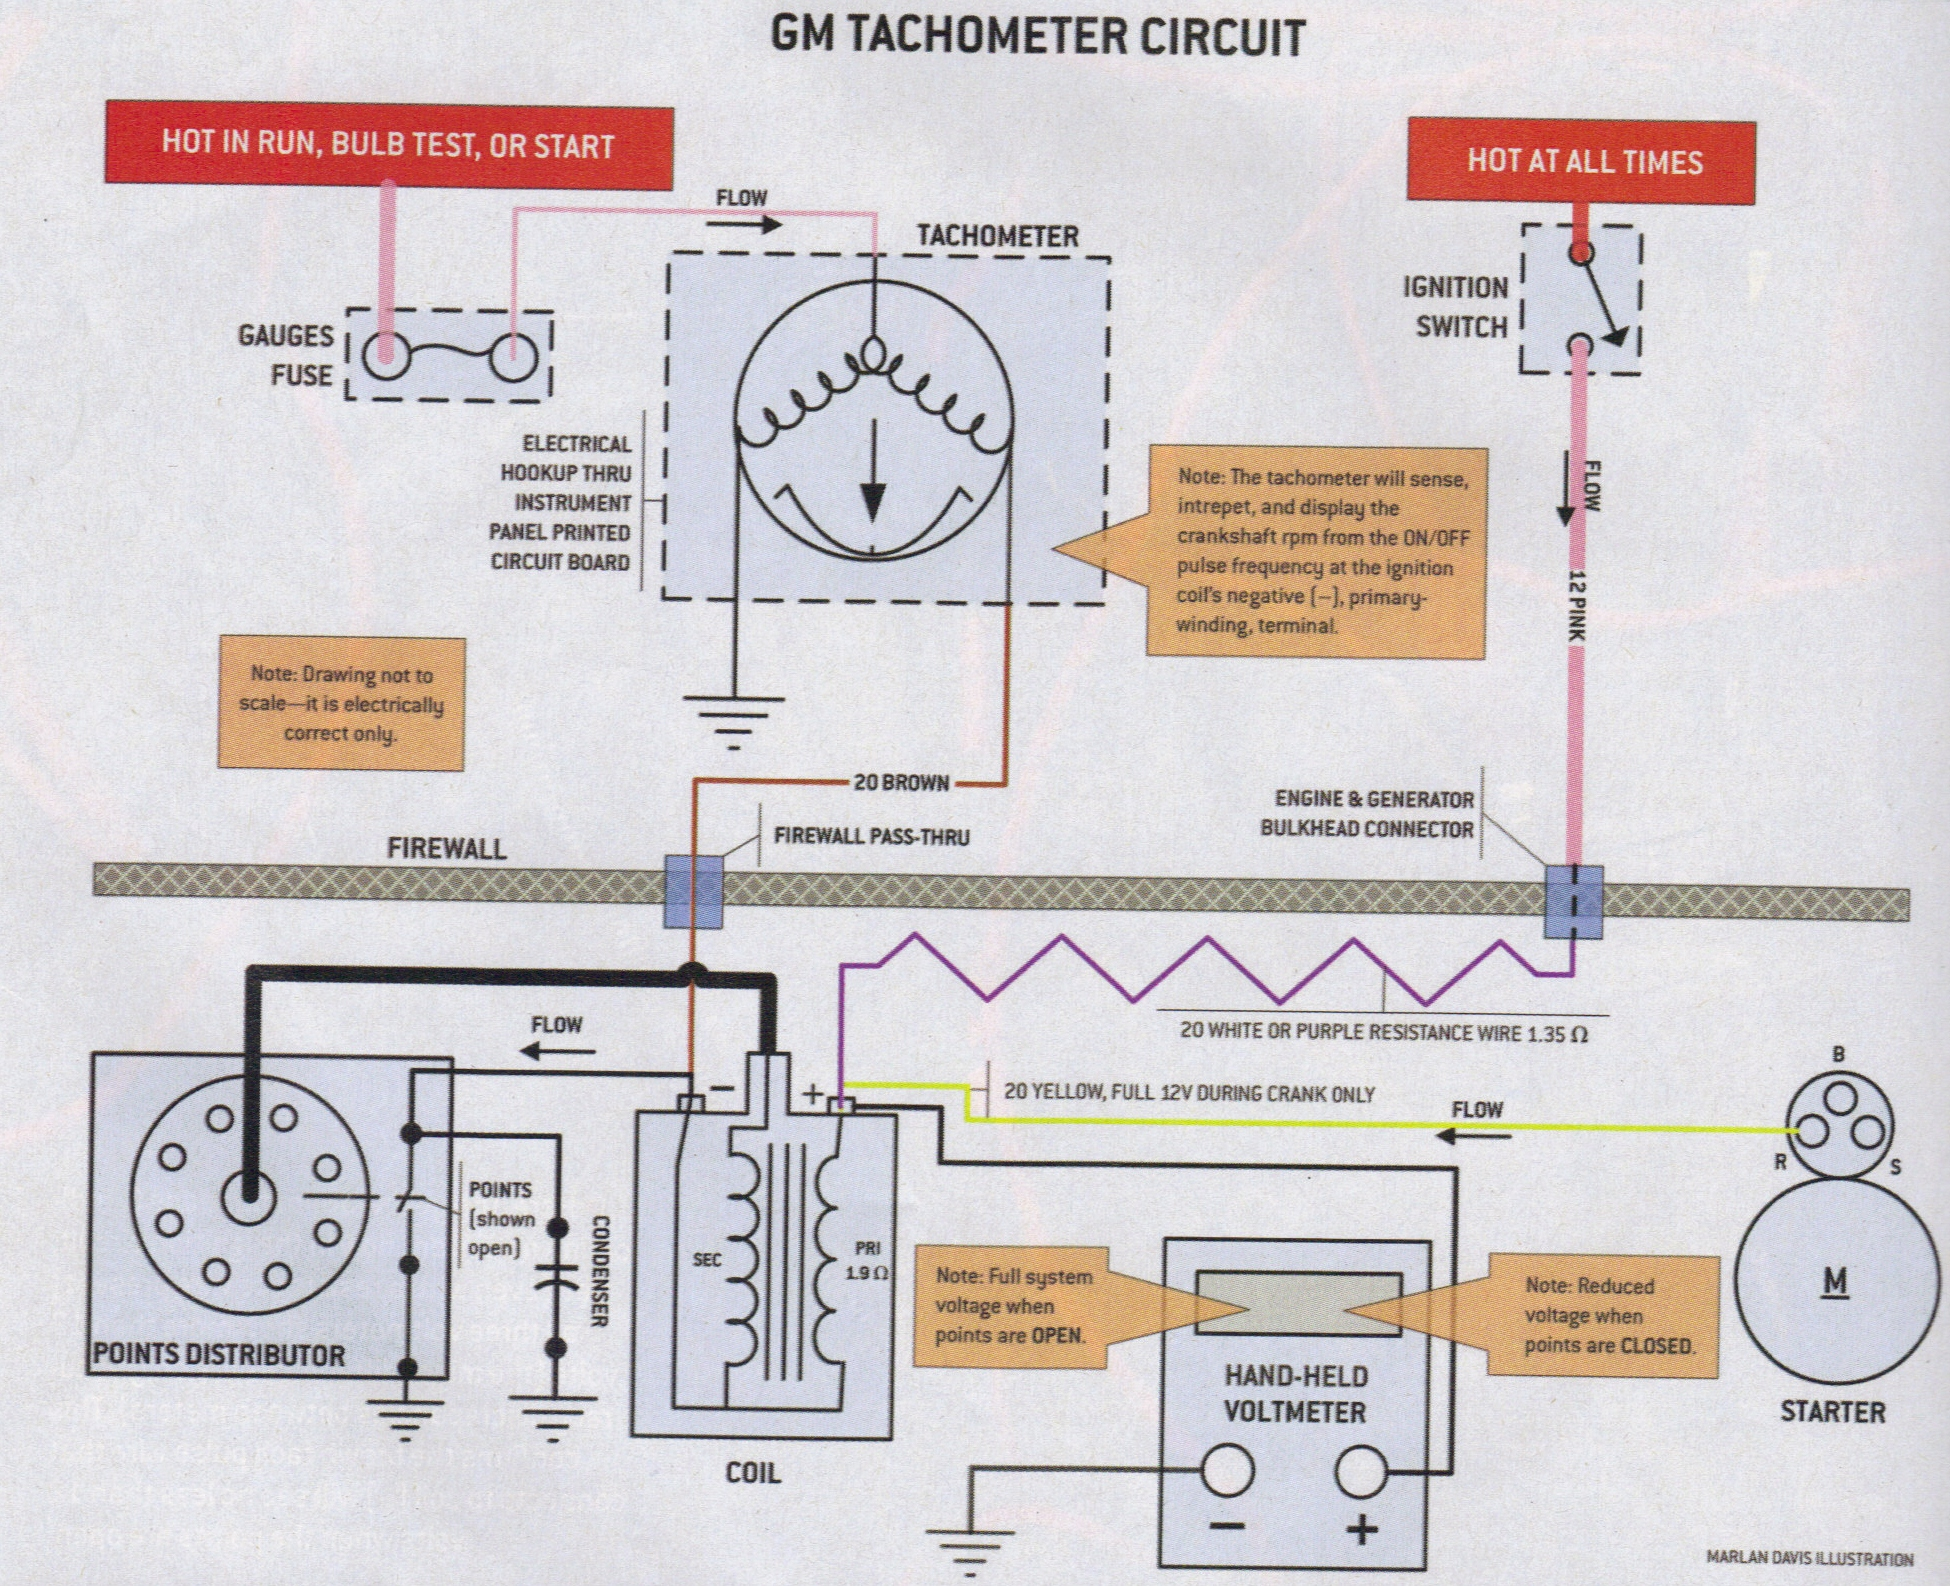 Chevy Tach Wiring Diagram | Schematic Diagram on